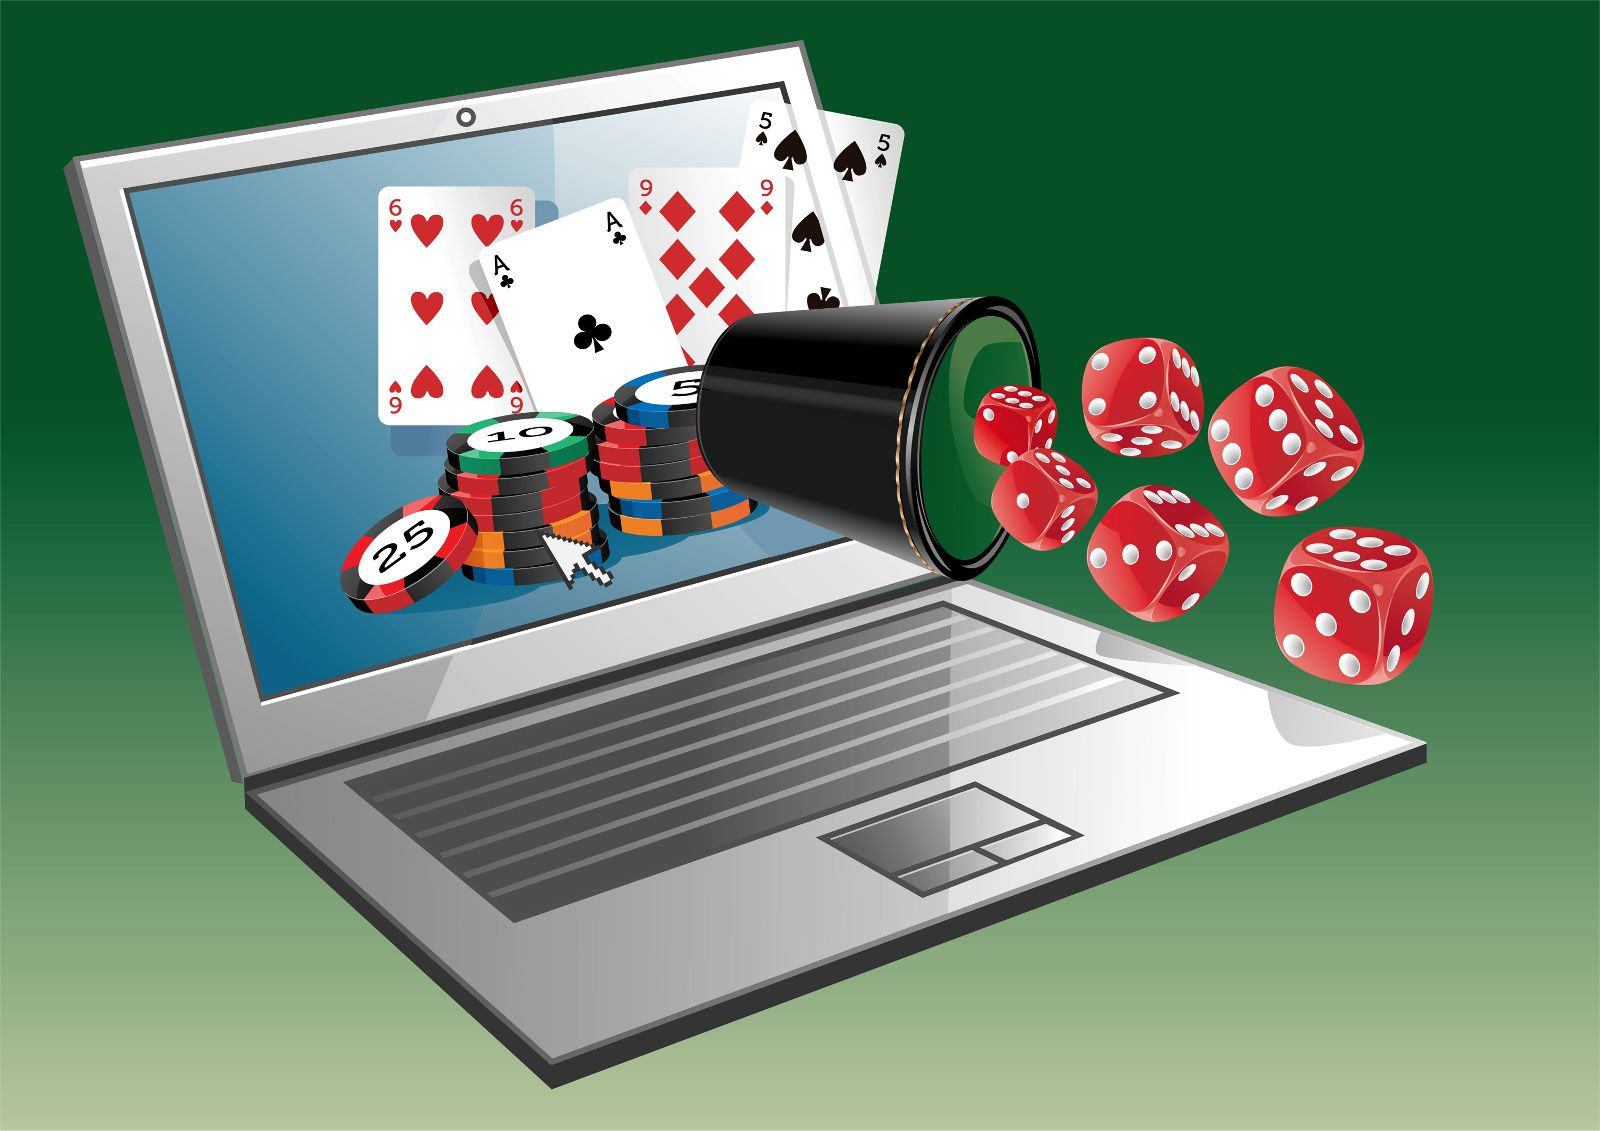 5 Most Common Online Gambling Legal Issues - JusticesNows